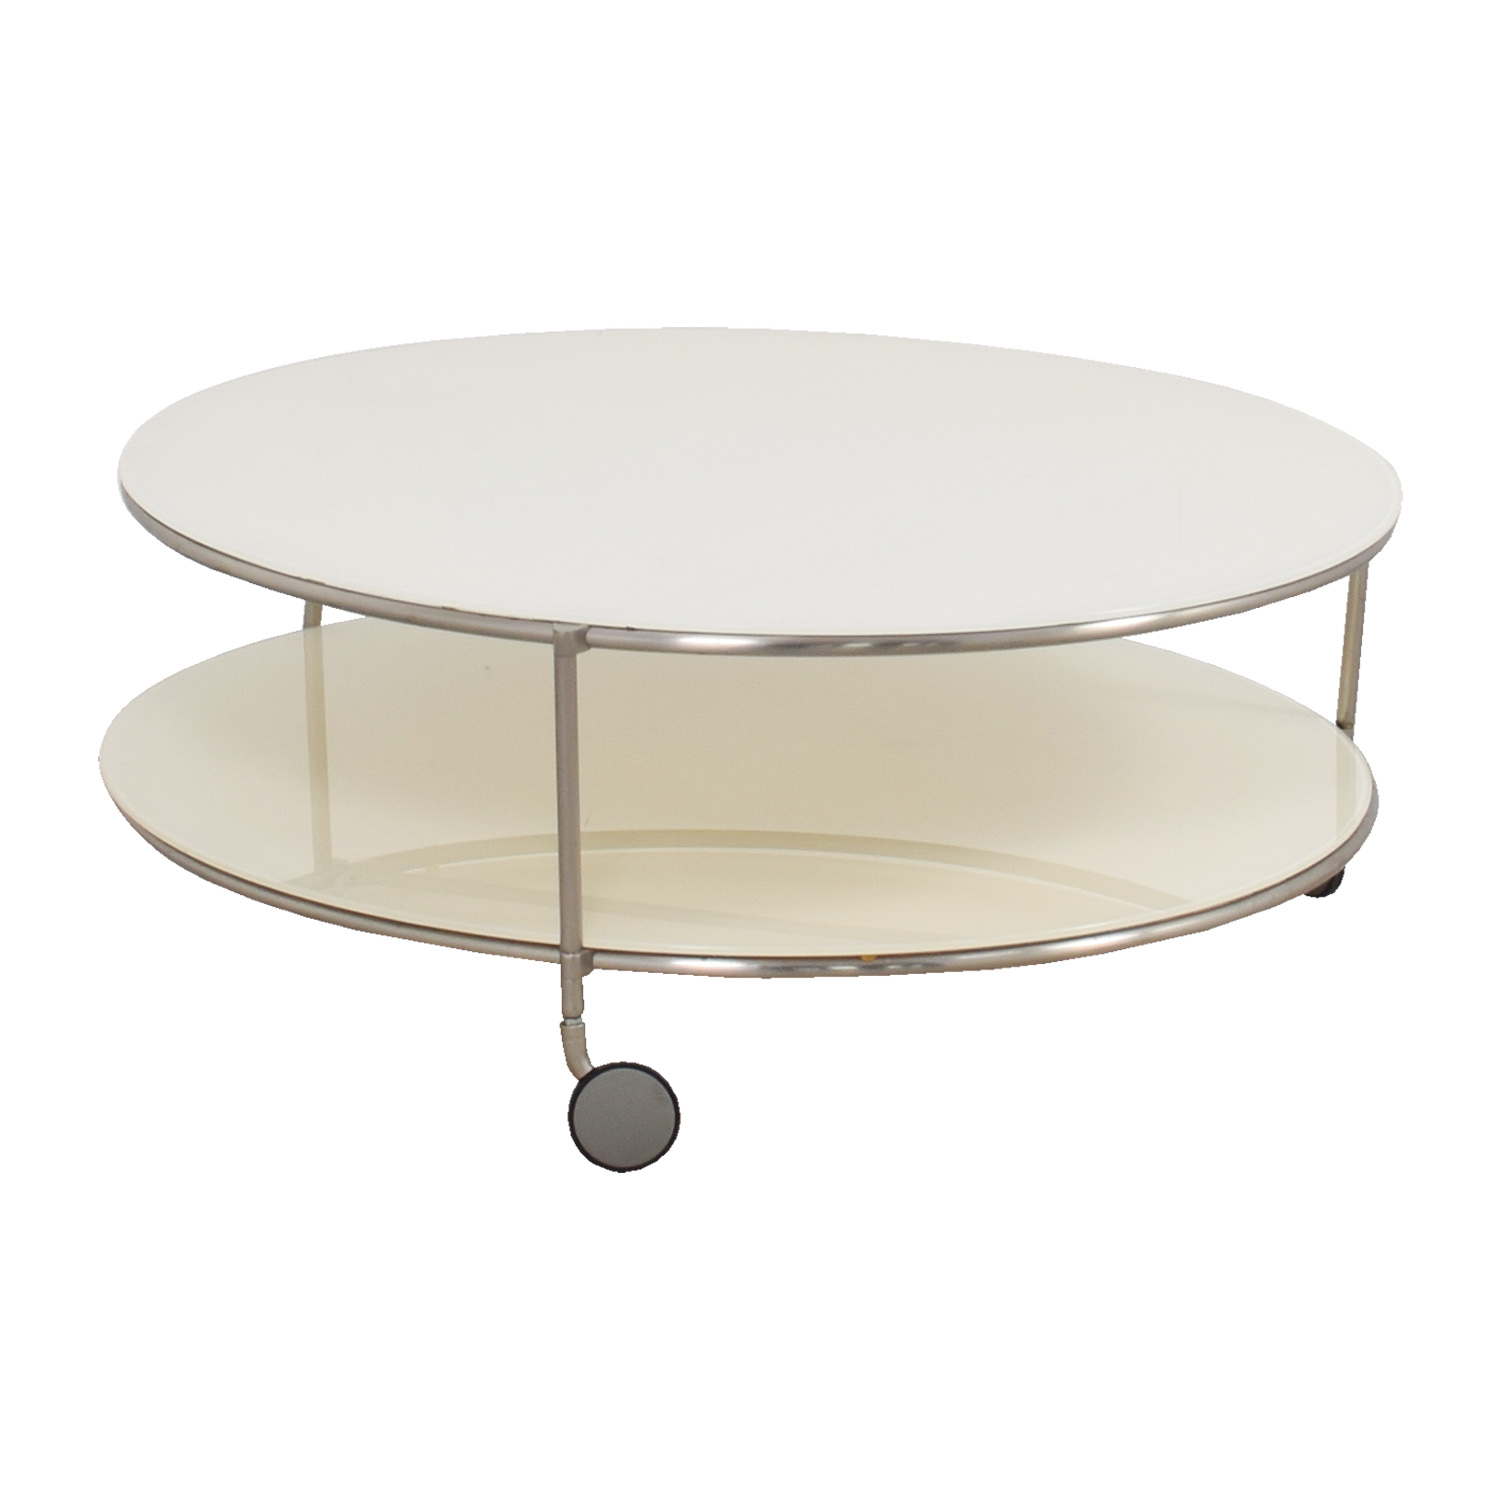 Crate And Barrel Black Marble Coffee Table: Crate & Barrel Crate & Barrel White Double Glass